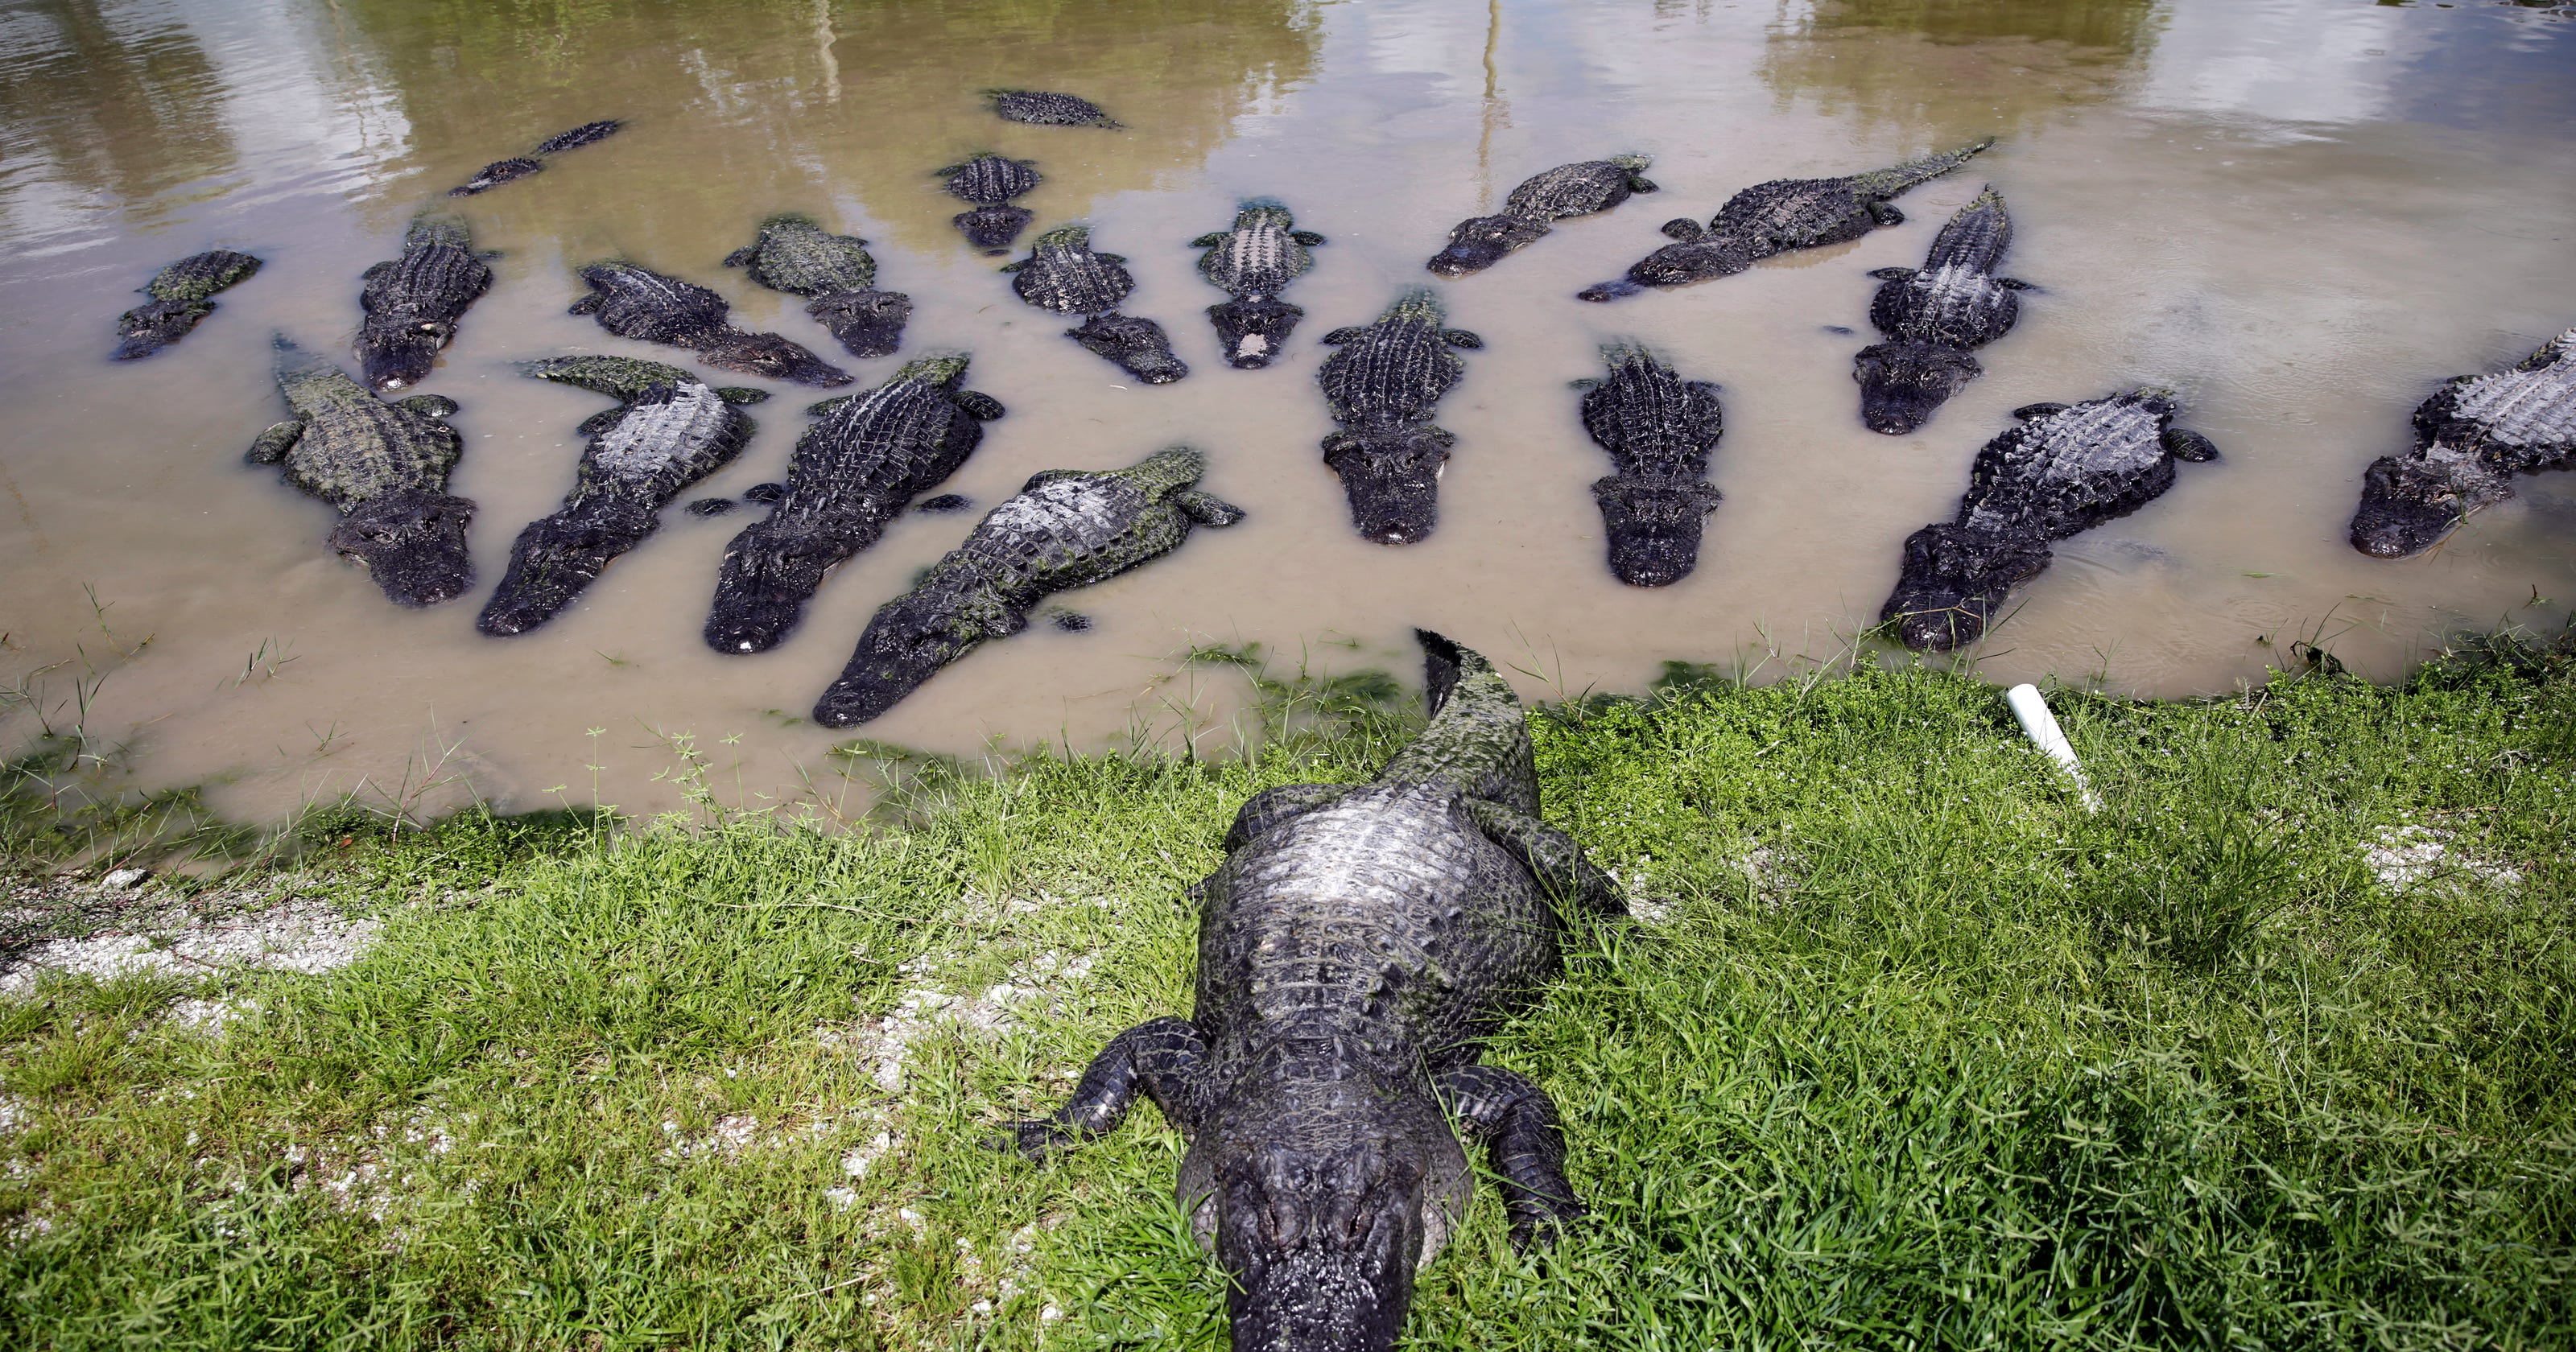 11 places to see alligators in Southwest Florida